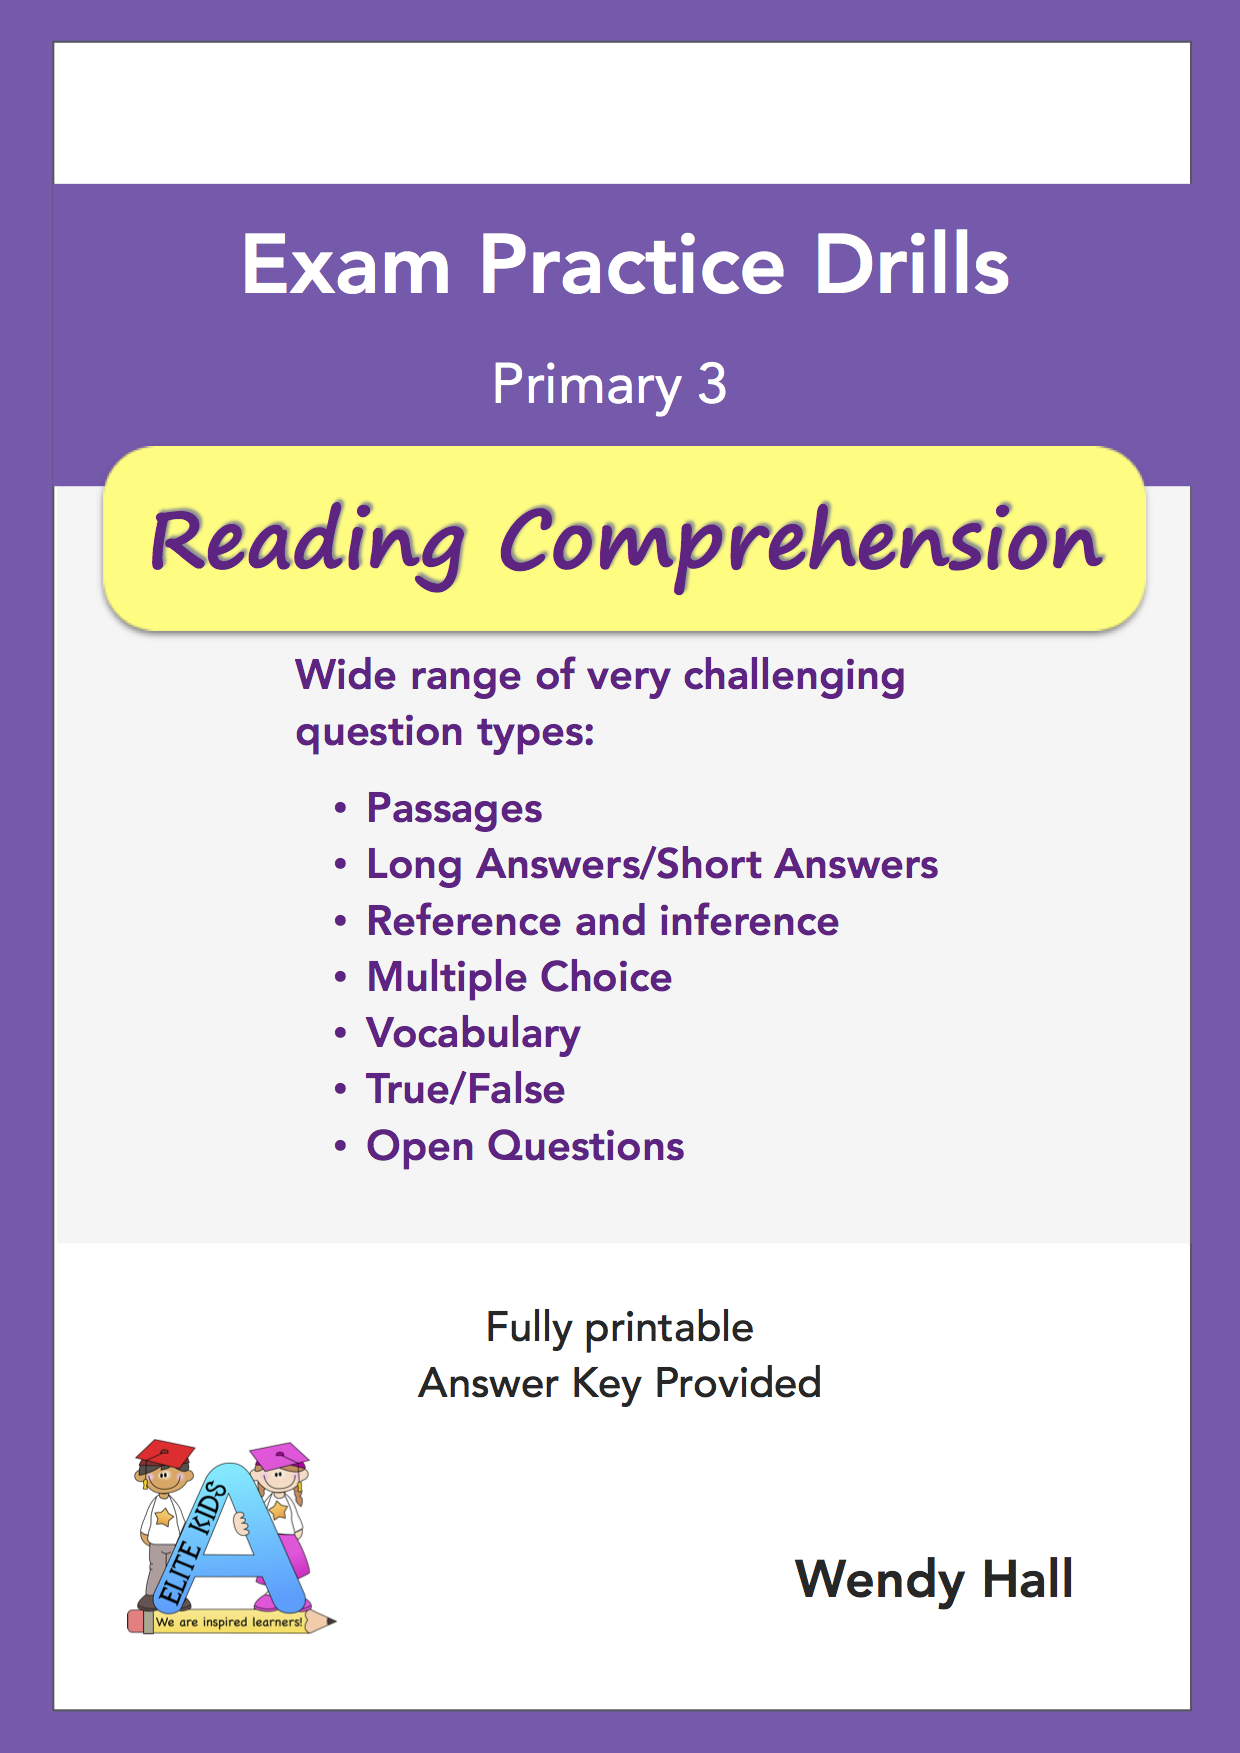 reading comprehension sample test Prepare for your reading comprehension test if your pre-employment assessment includes the reading comprehension test and you are unsure whether you can pass it, we can lessen your worries and lead you to success.